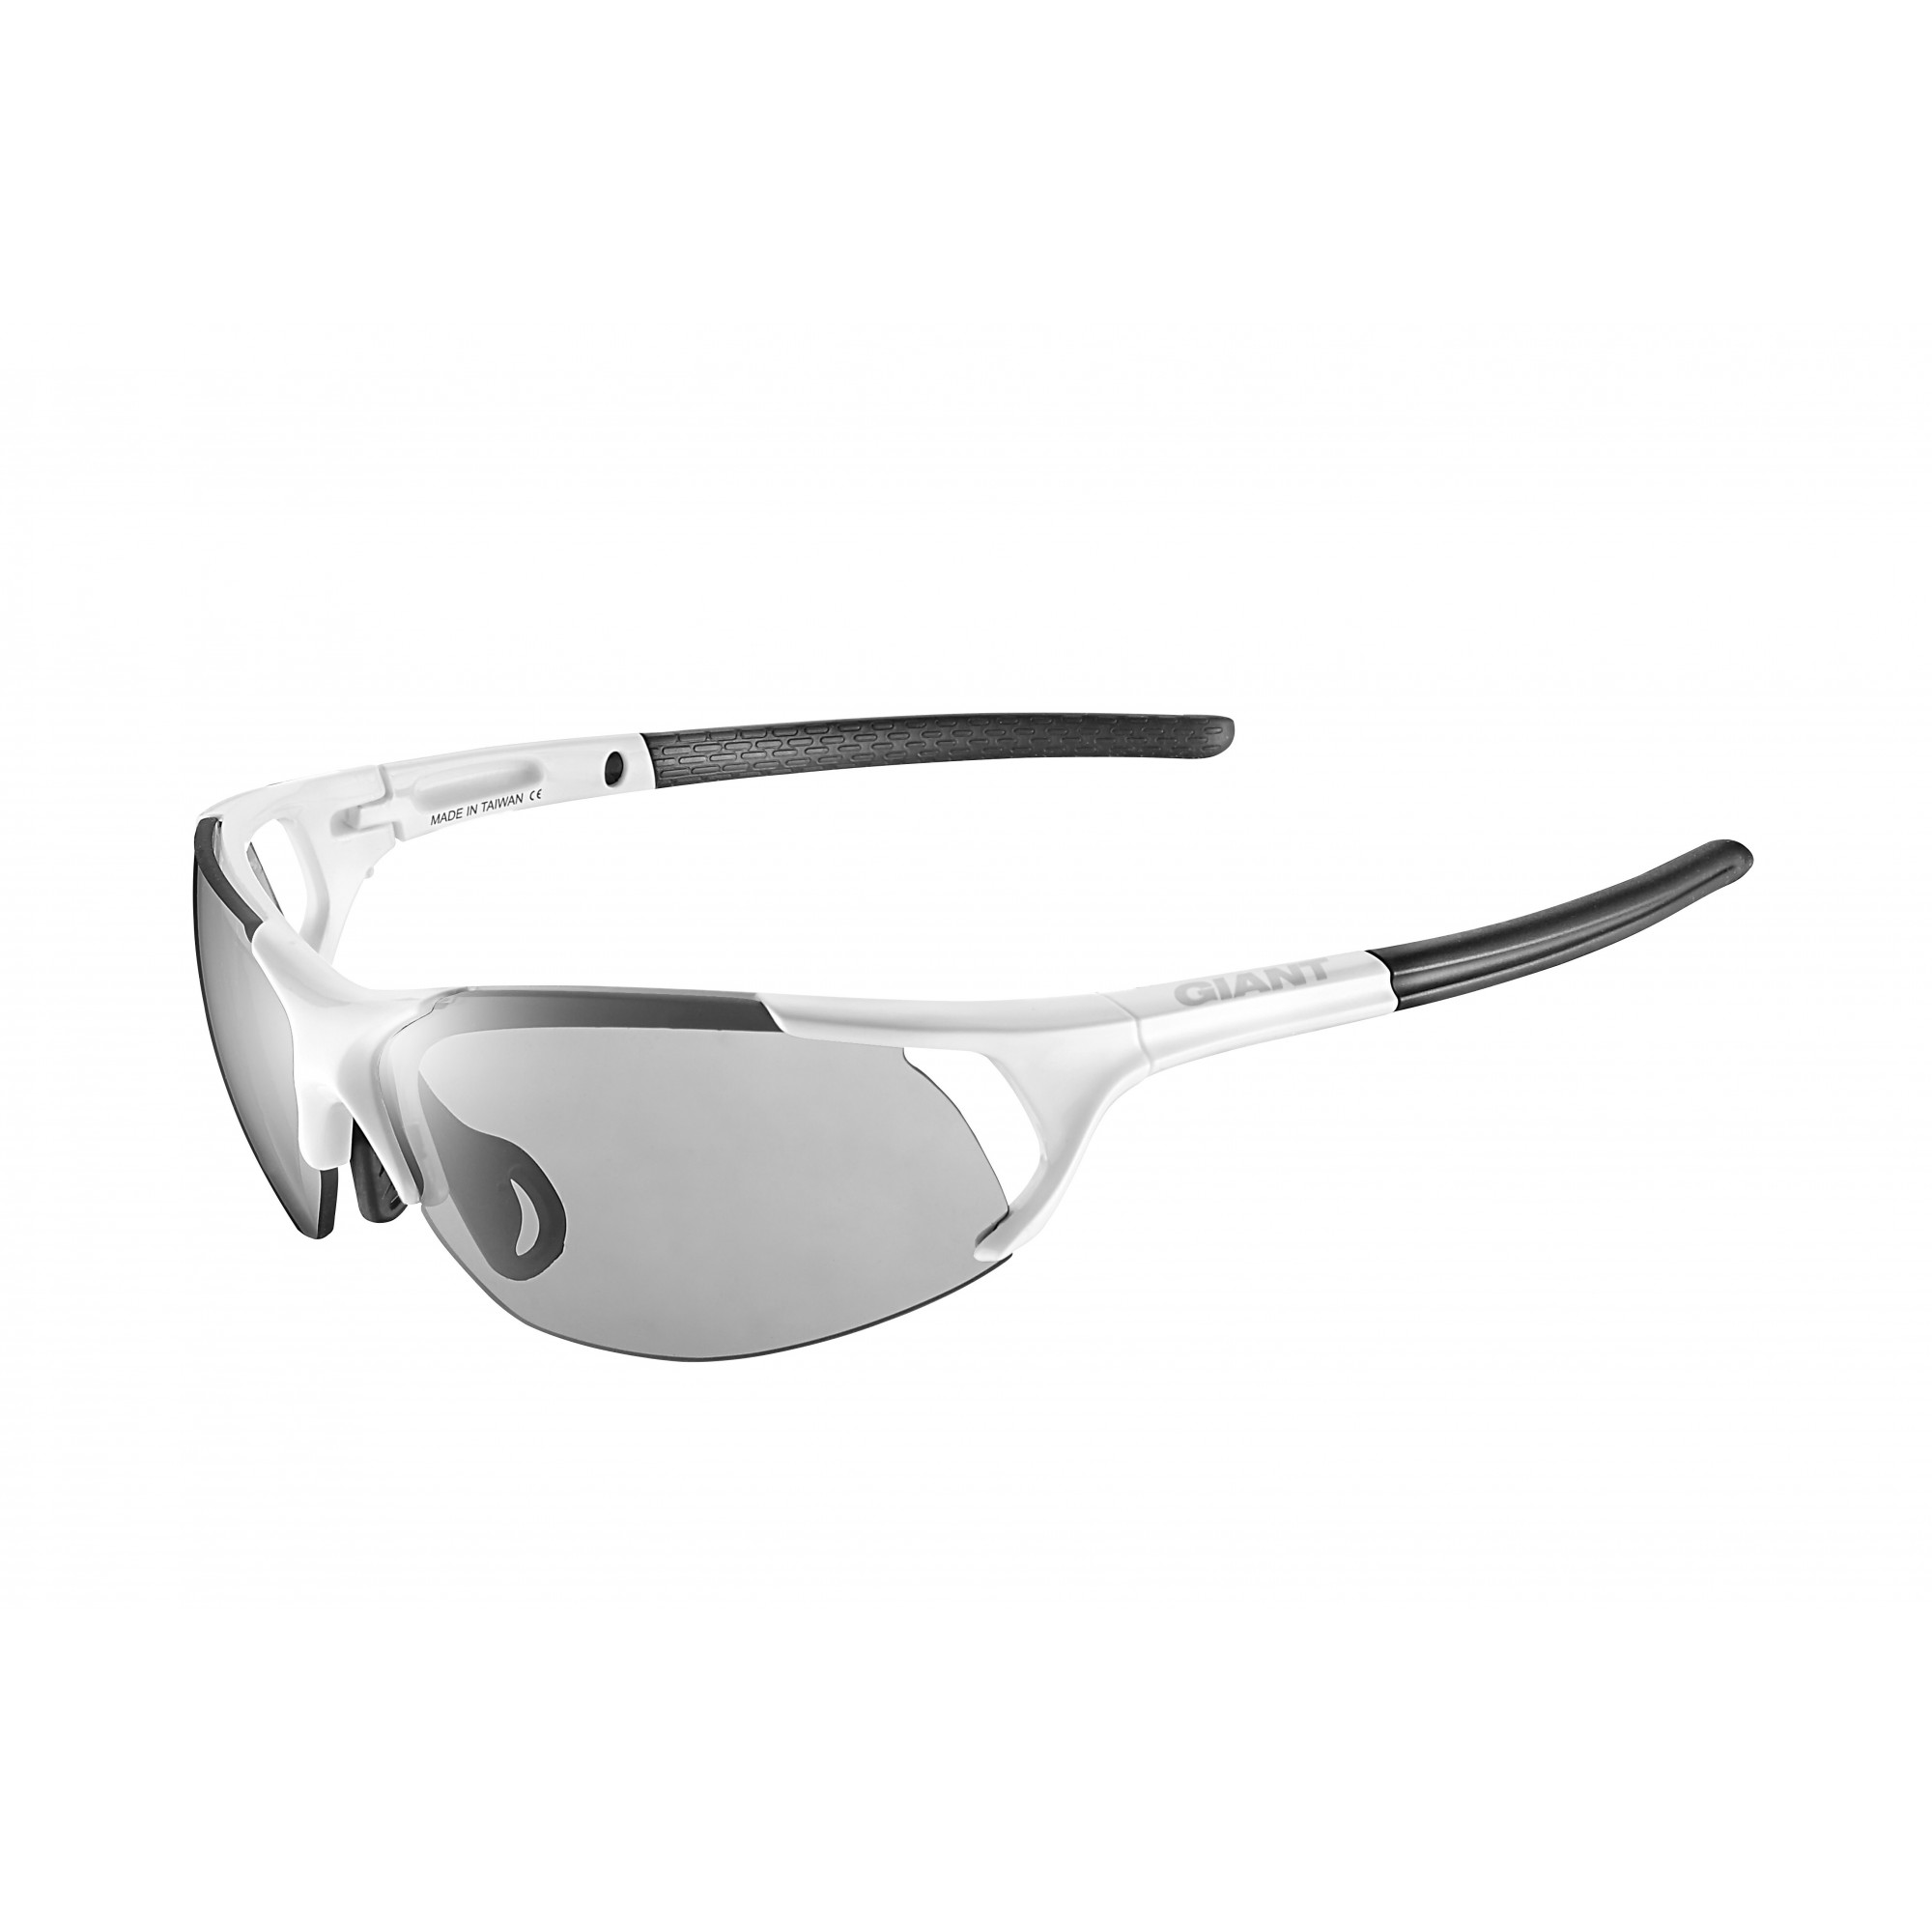 Lunettes Giant Swift NXT Varia blanc